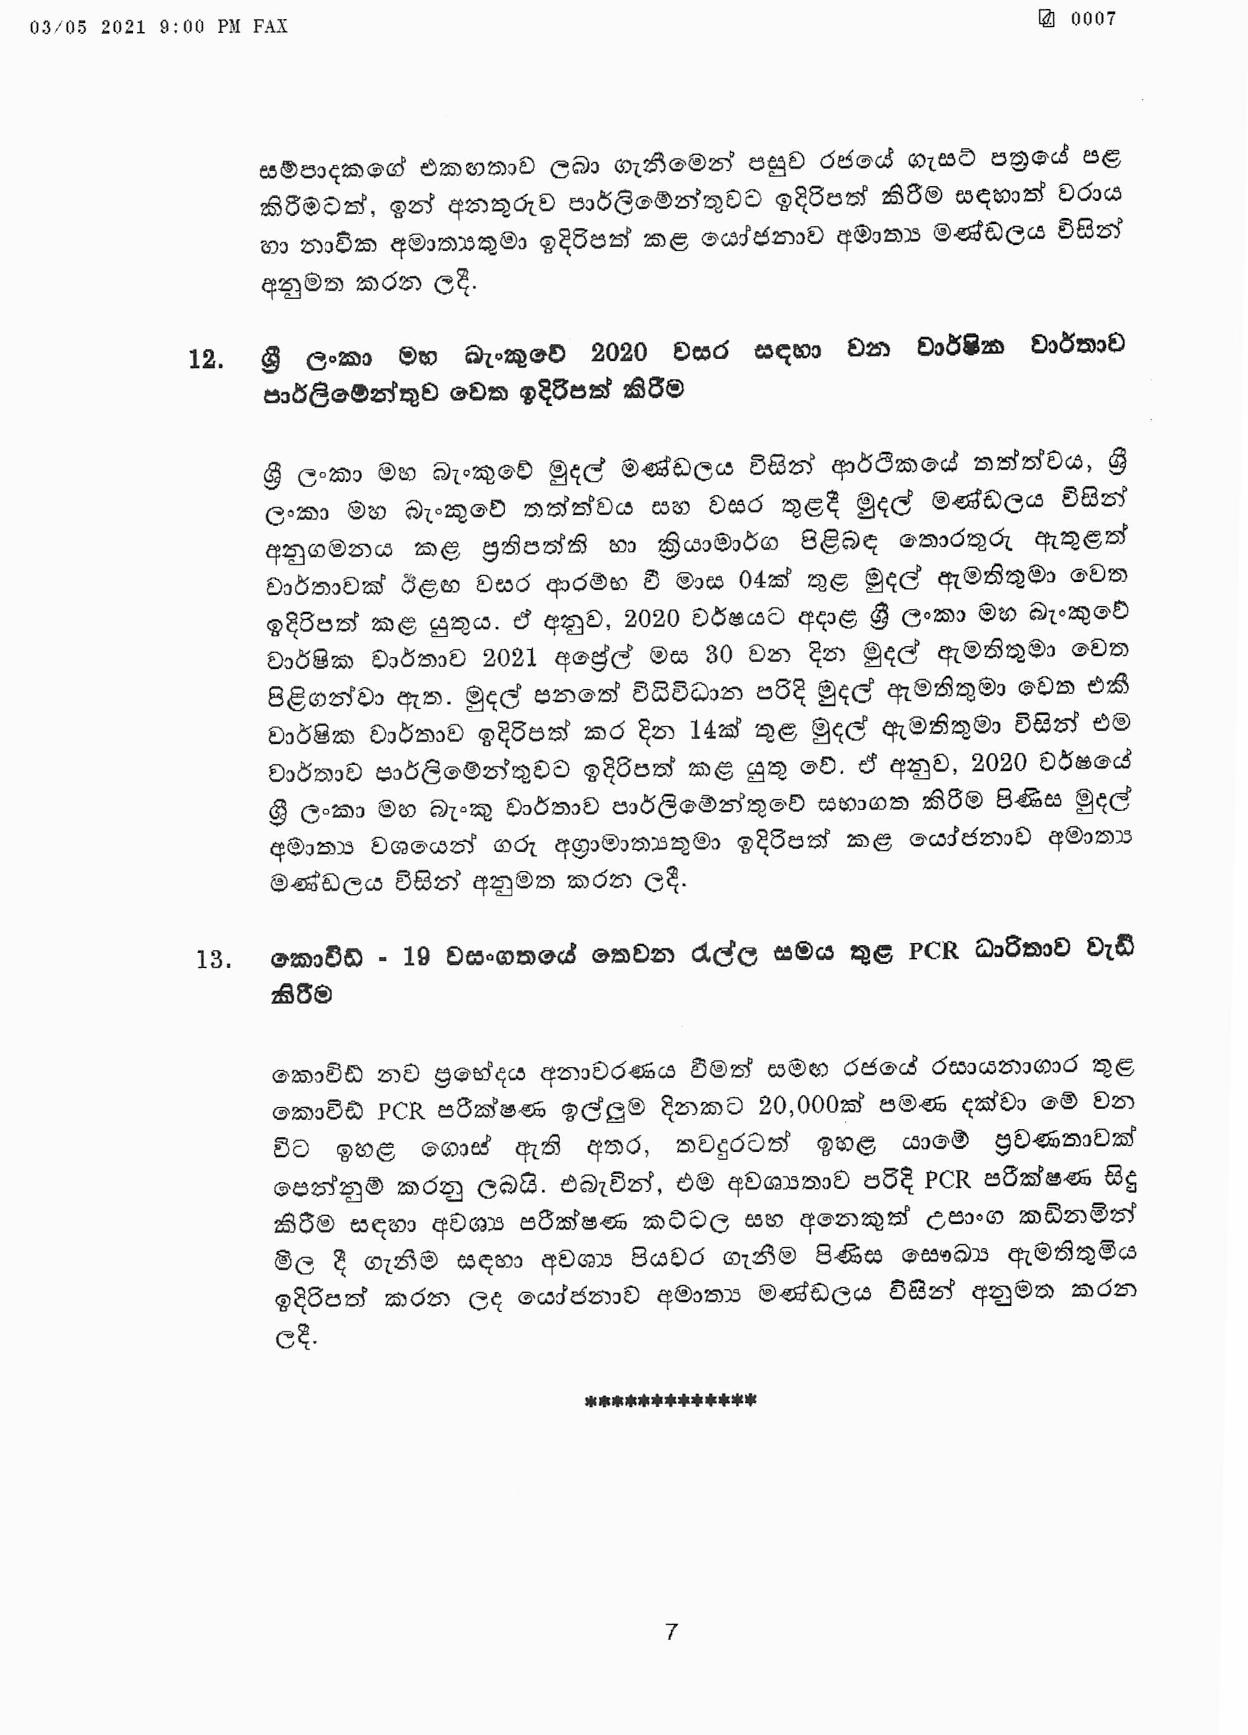 Cabinet Decision on 03.05.2021 page 007